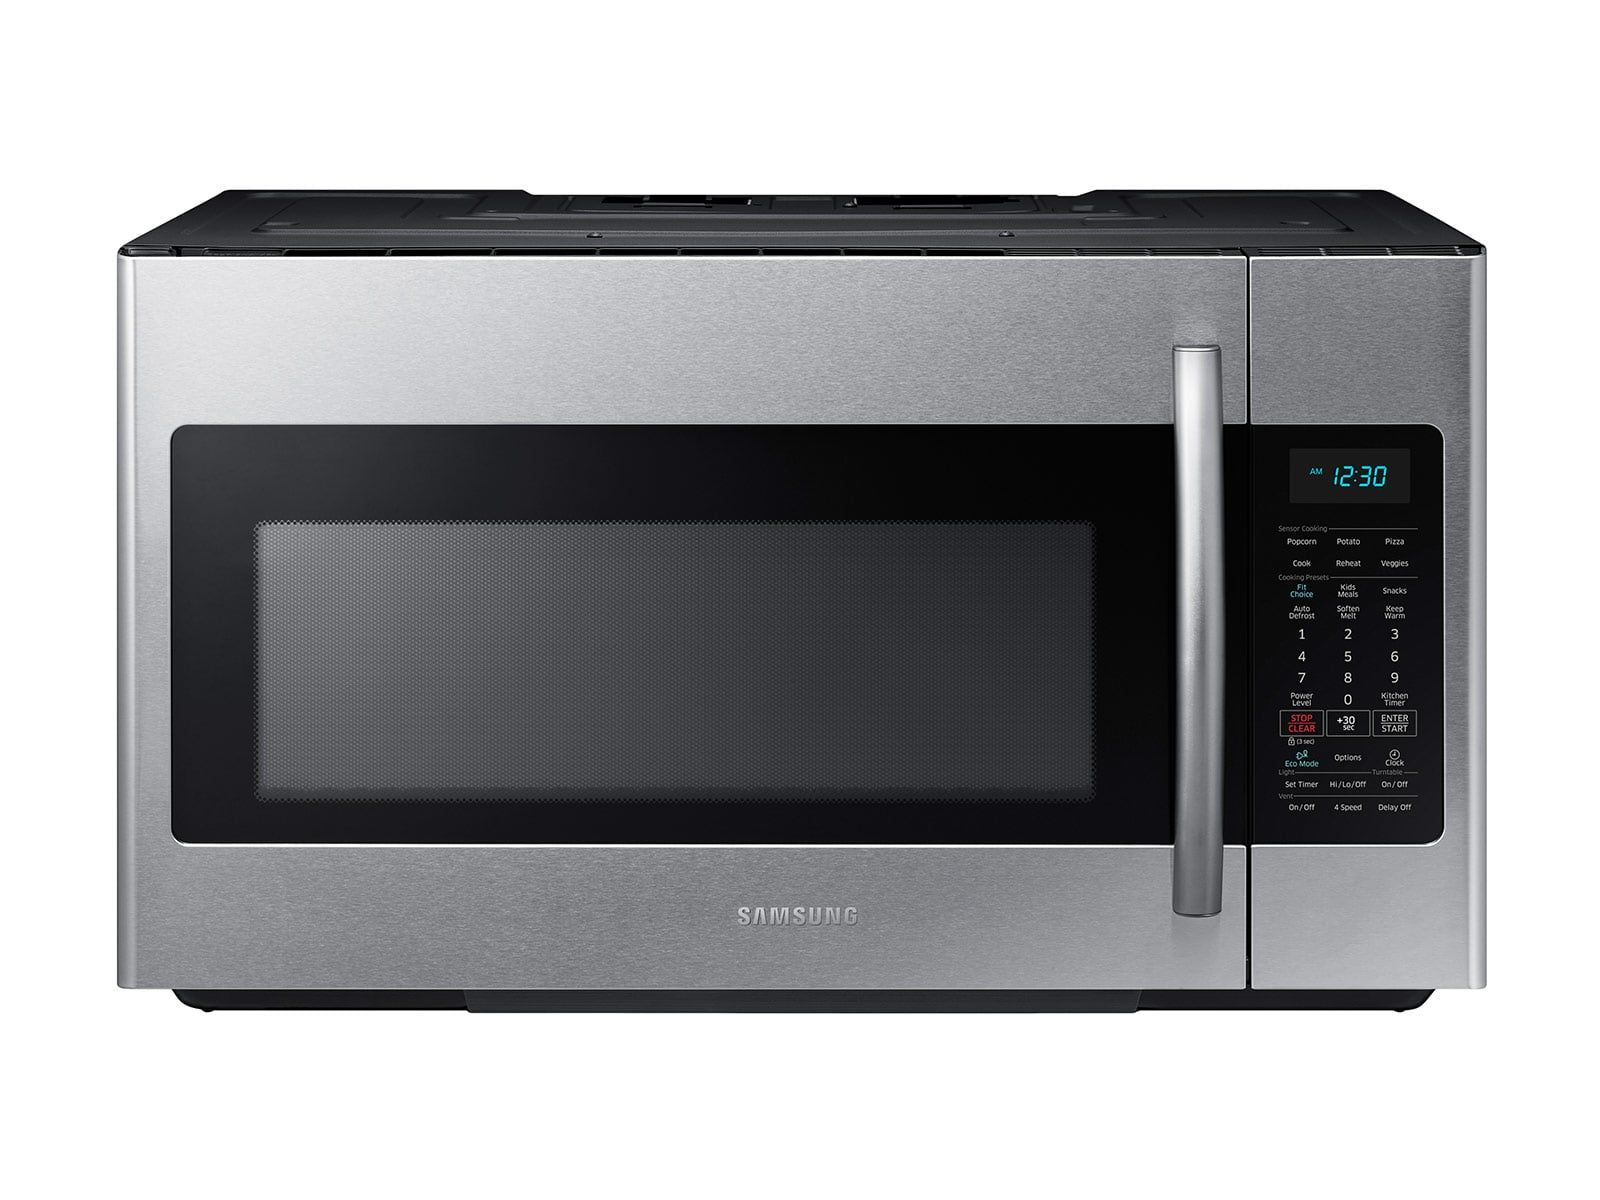 Samsung 1 8 Cu Ft Over The Range Microwave With Sensor Cooking In Fingerprint Resistant Stainless Steel Microwave Over Range Microwave Microwave Oven